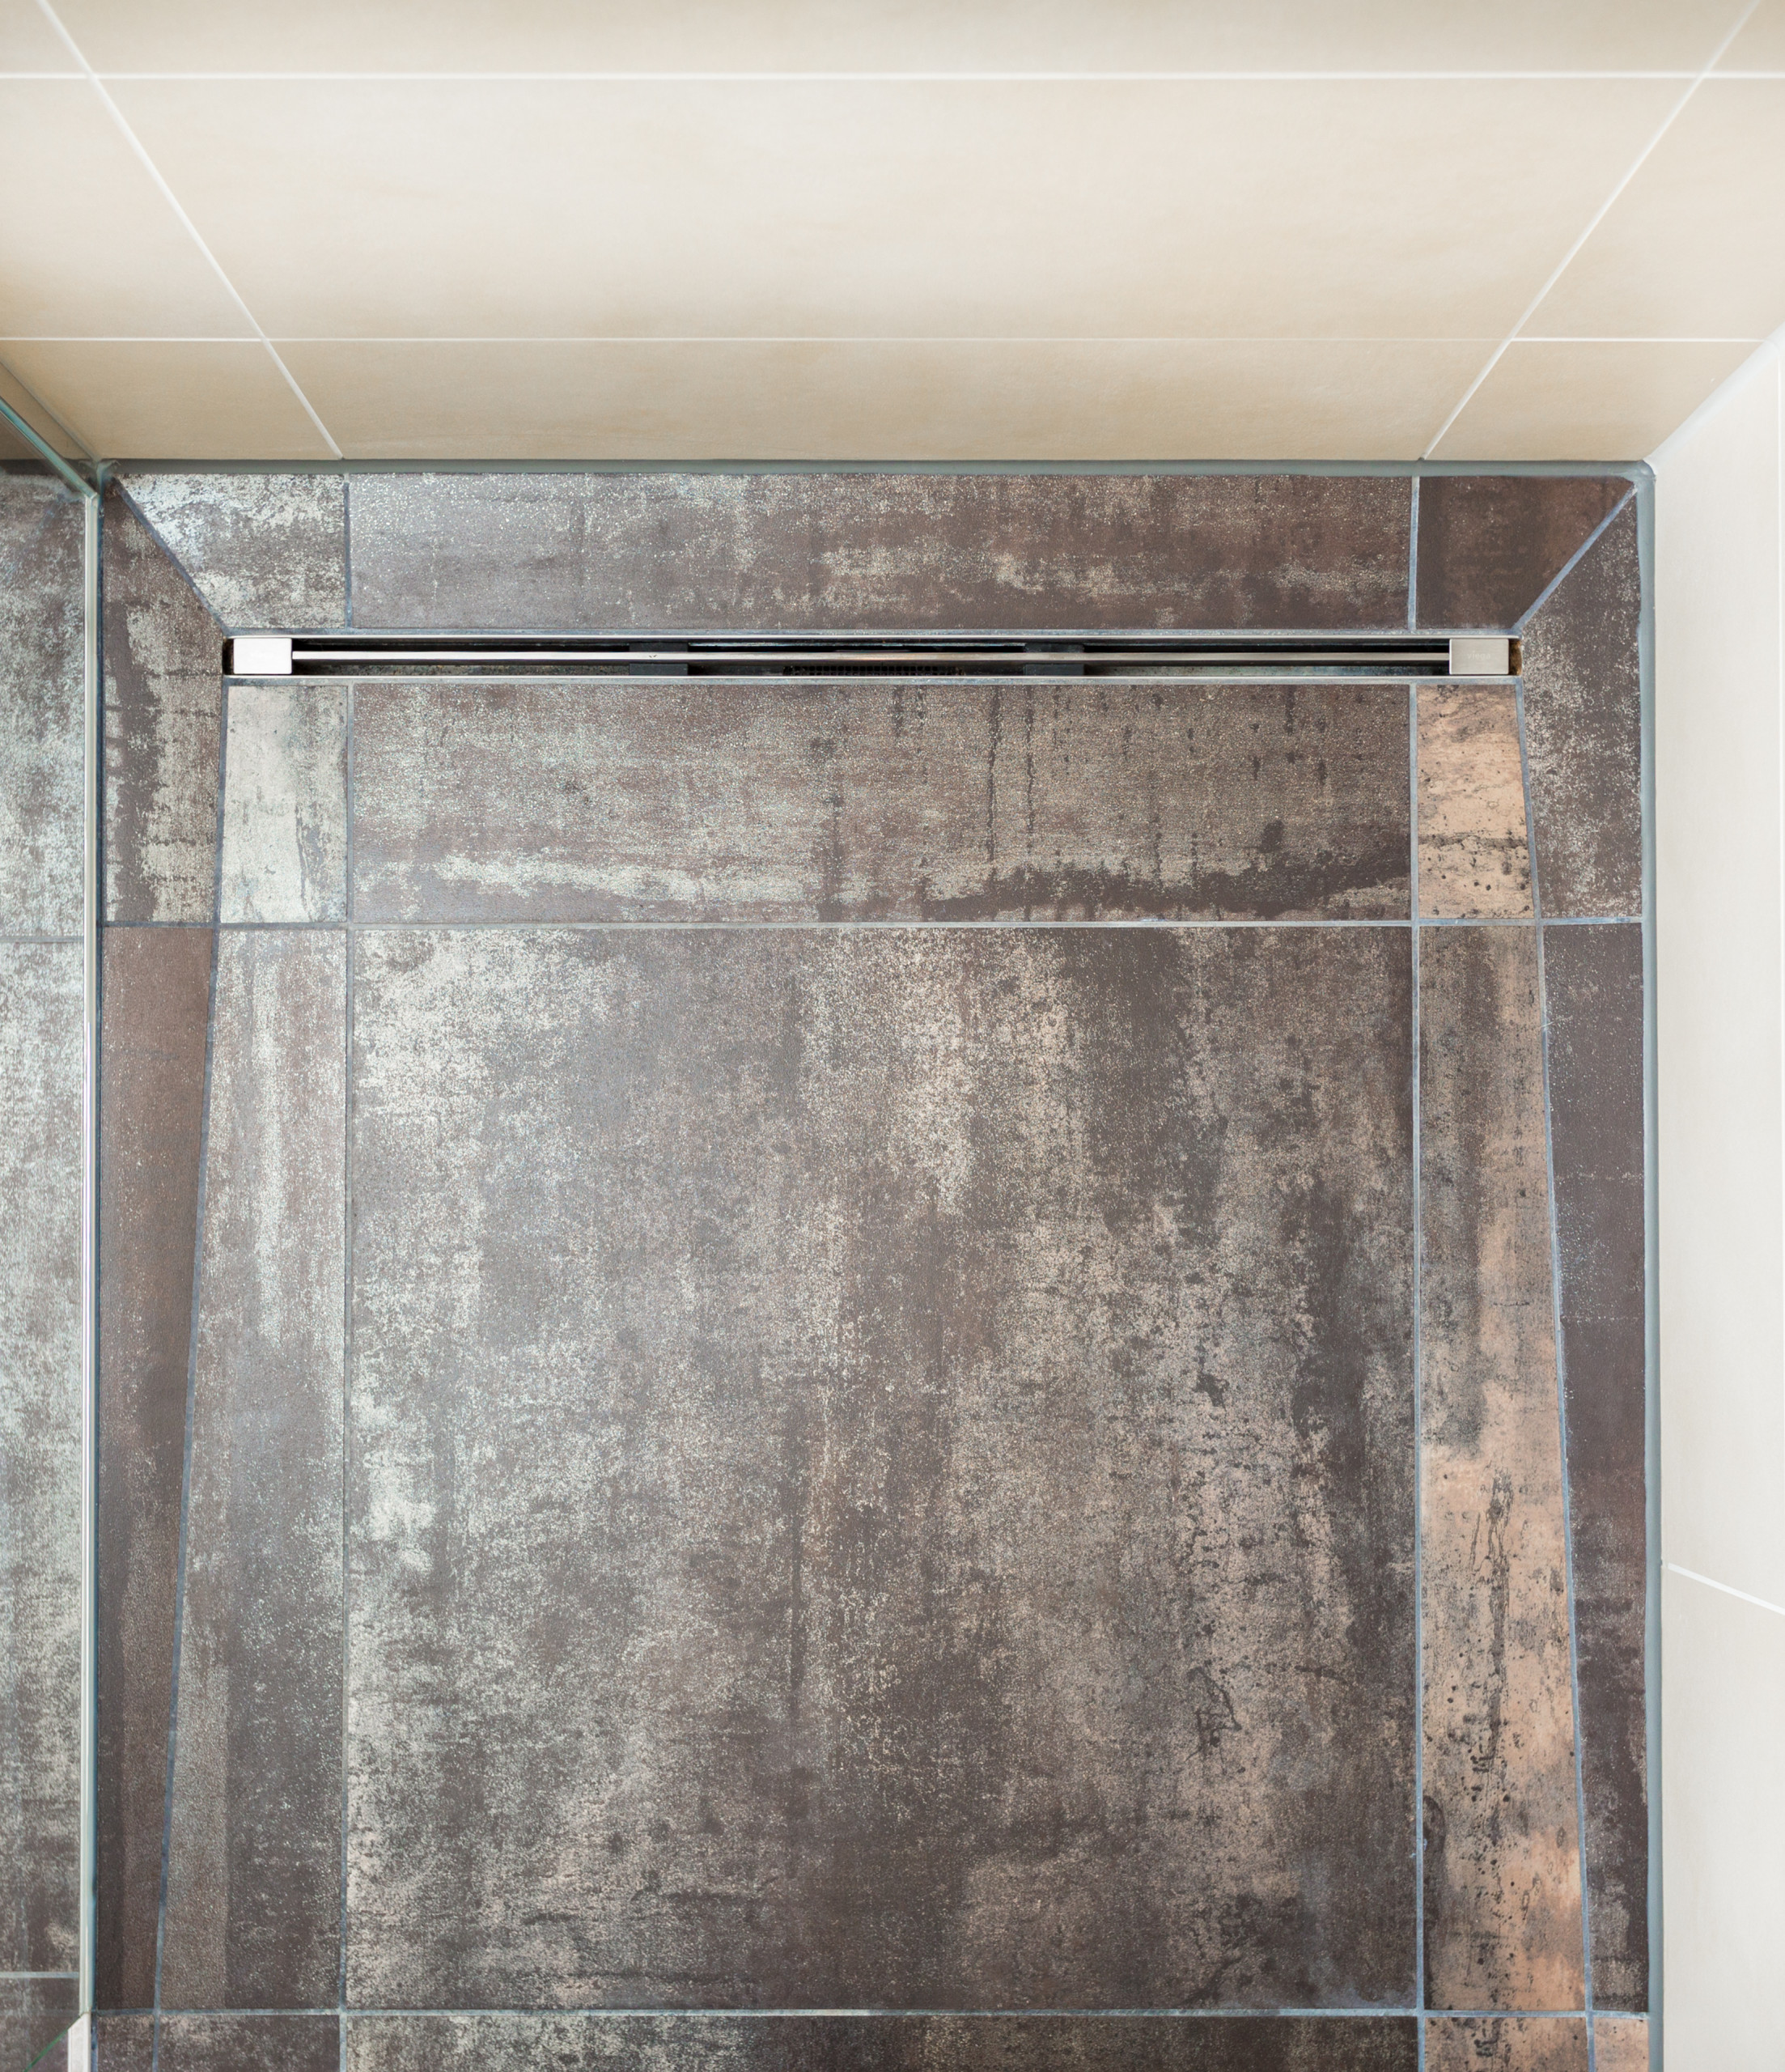 Dusche Ablaufrinne 75 Beautiful Doorless Shower With An Urinal Pictures & Ideas - February, 2021 | Houzz